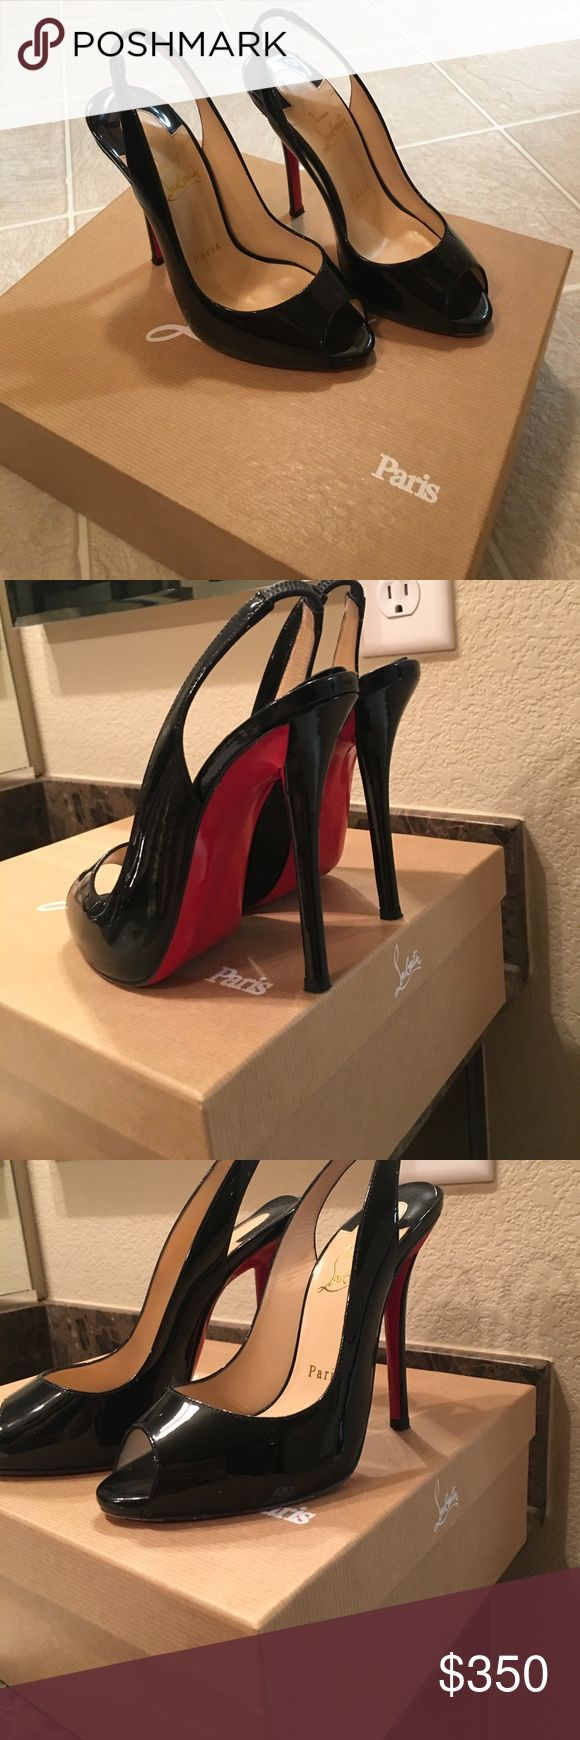 gently used christian louboutin shoes